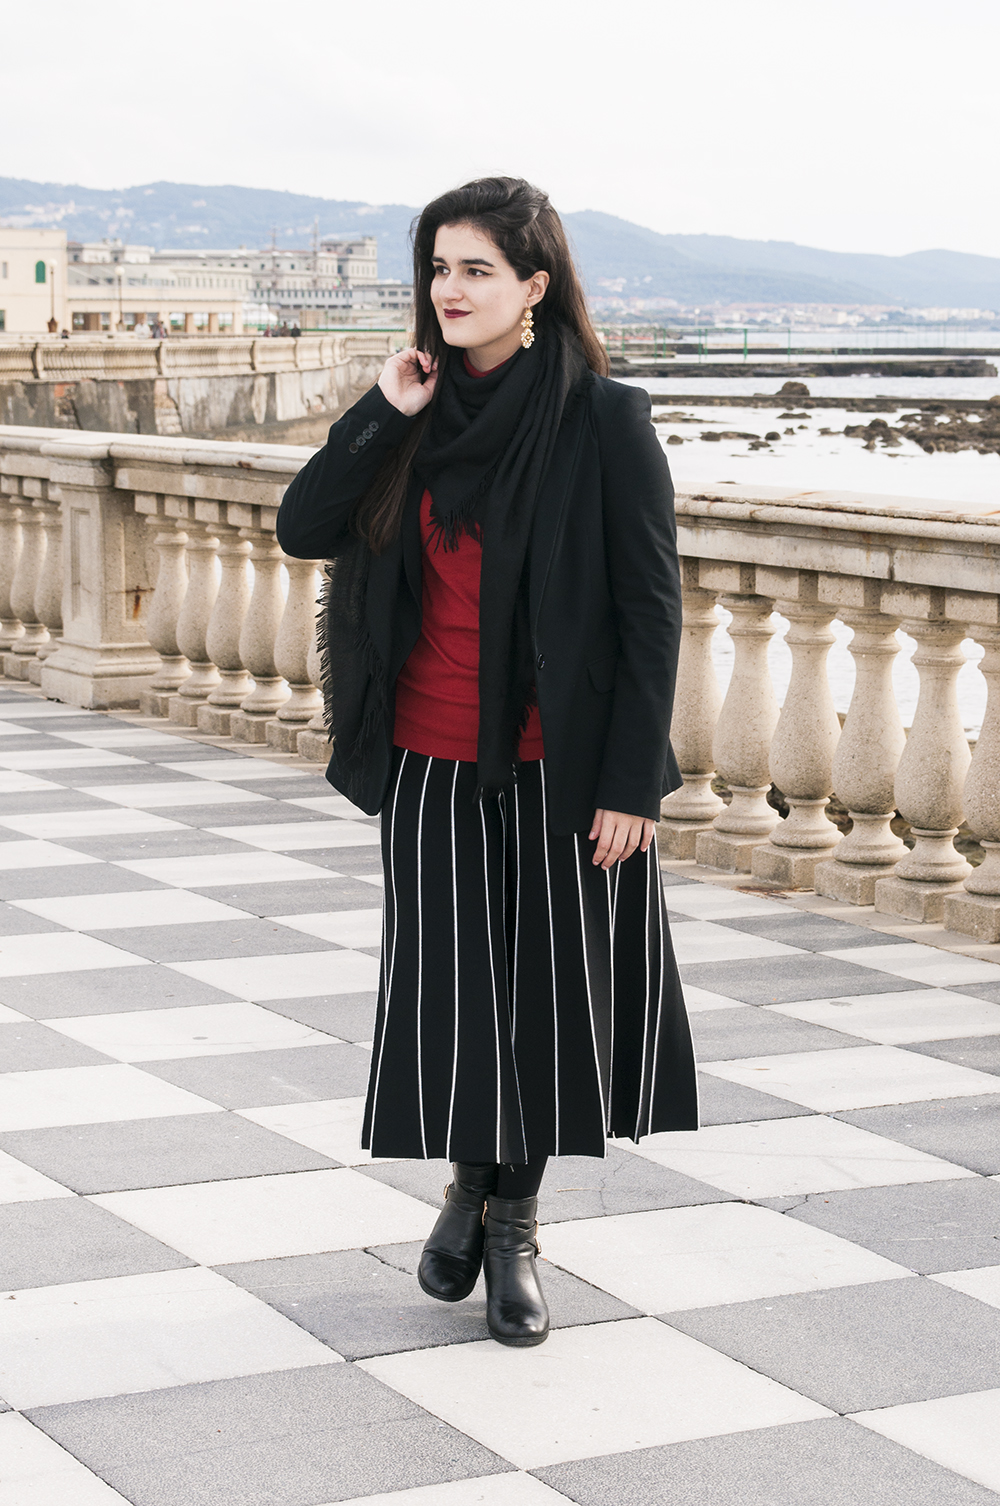 something fashion blogger influencer streetstyle firenze spain italianbloggers erasmus student culotte pants livorno pisa traveling europe_0460 copia